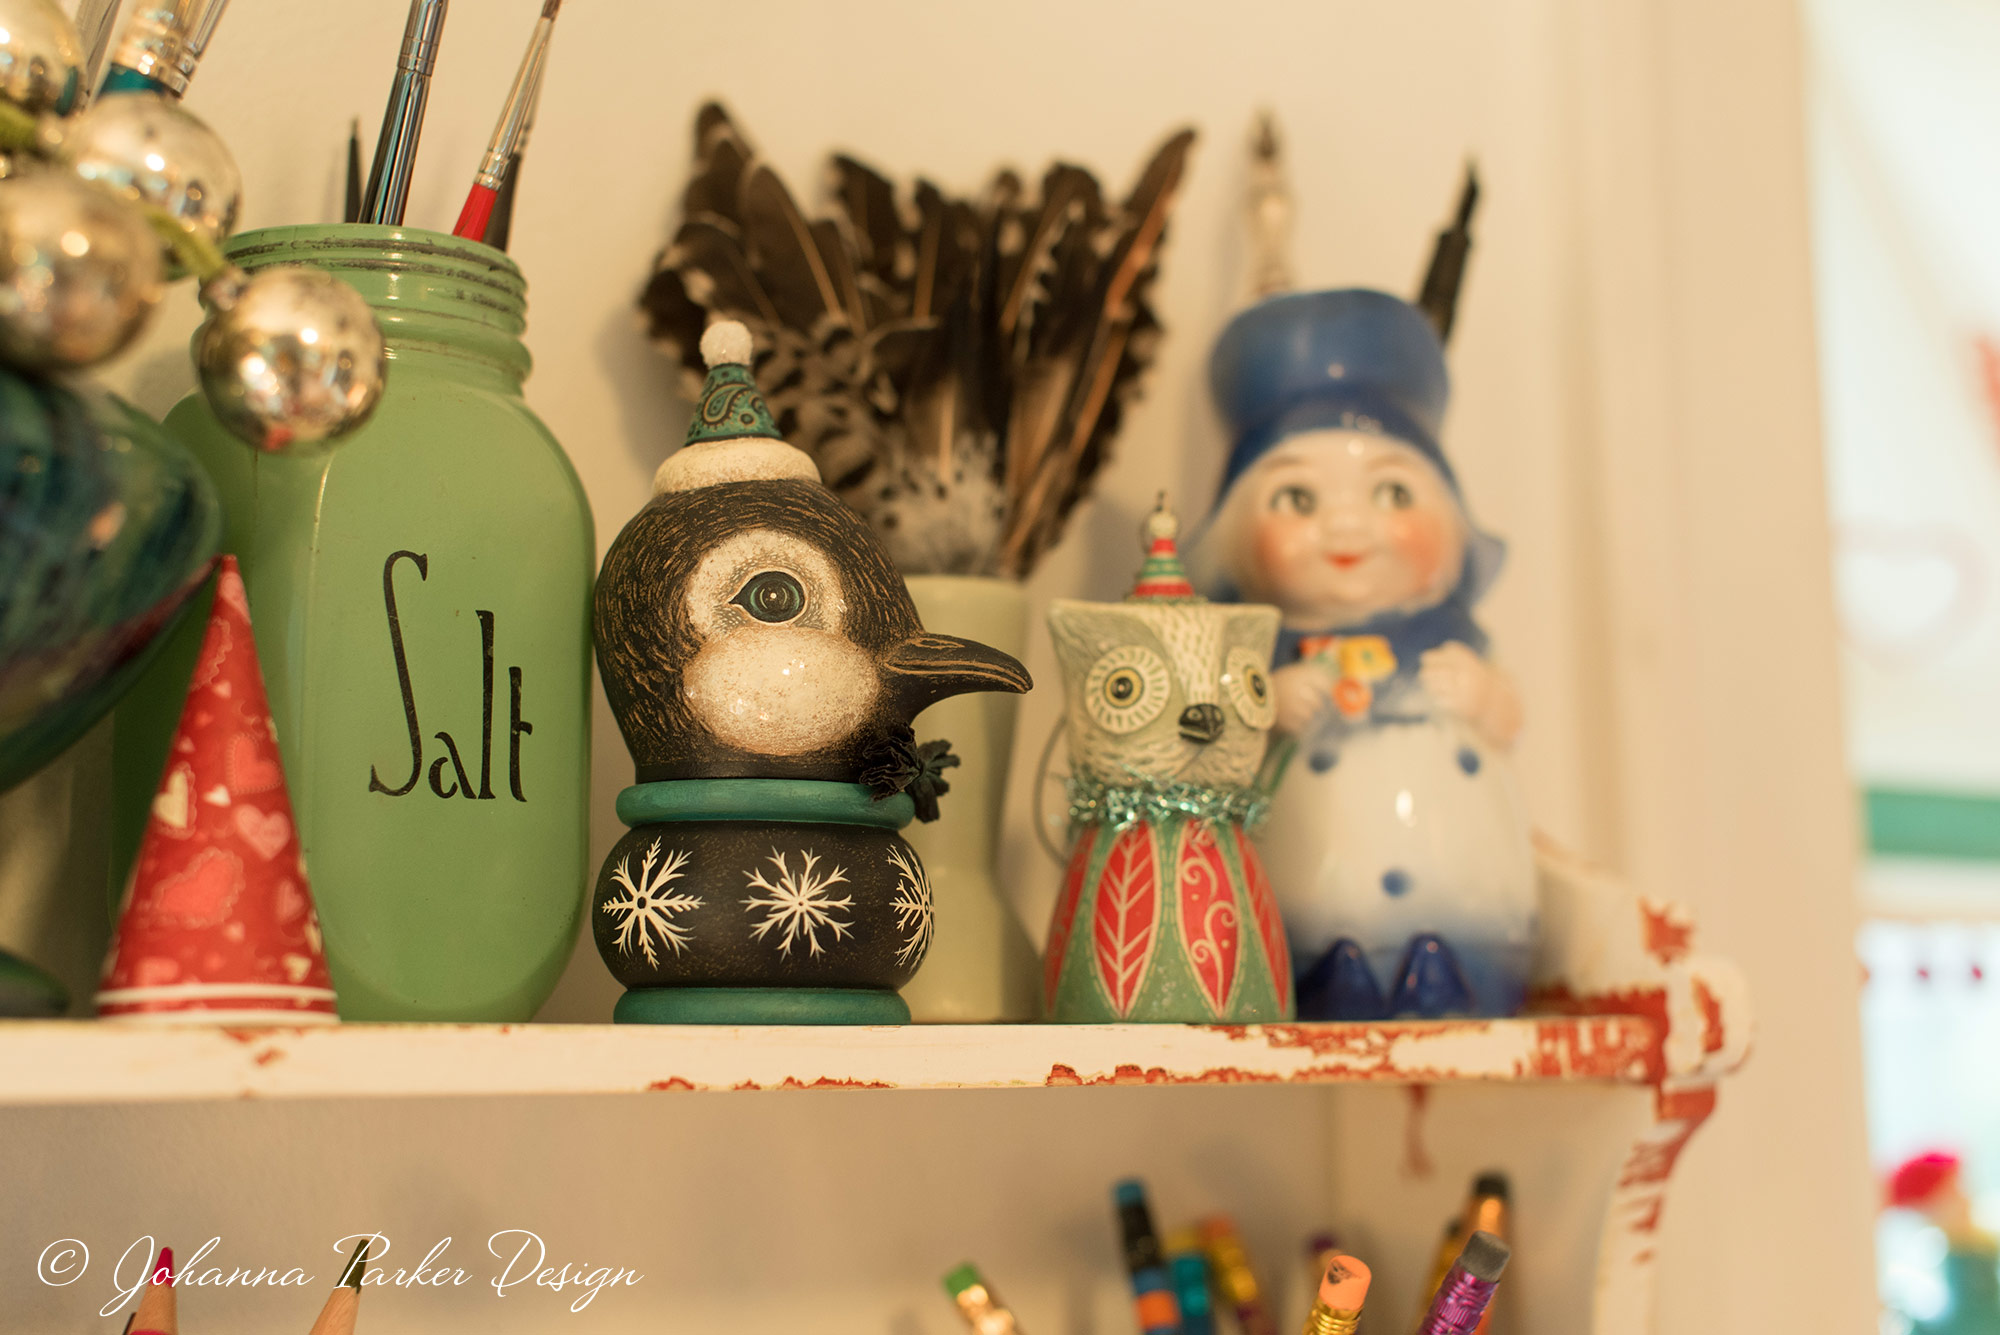 A closer peek at my shelf reveals a sweet penguin kettle cup and an owl ornament bell. Everything from feathers to vintage pottery and glassware add functionality and design inspiration to where I sit to sculpt and paint.